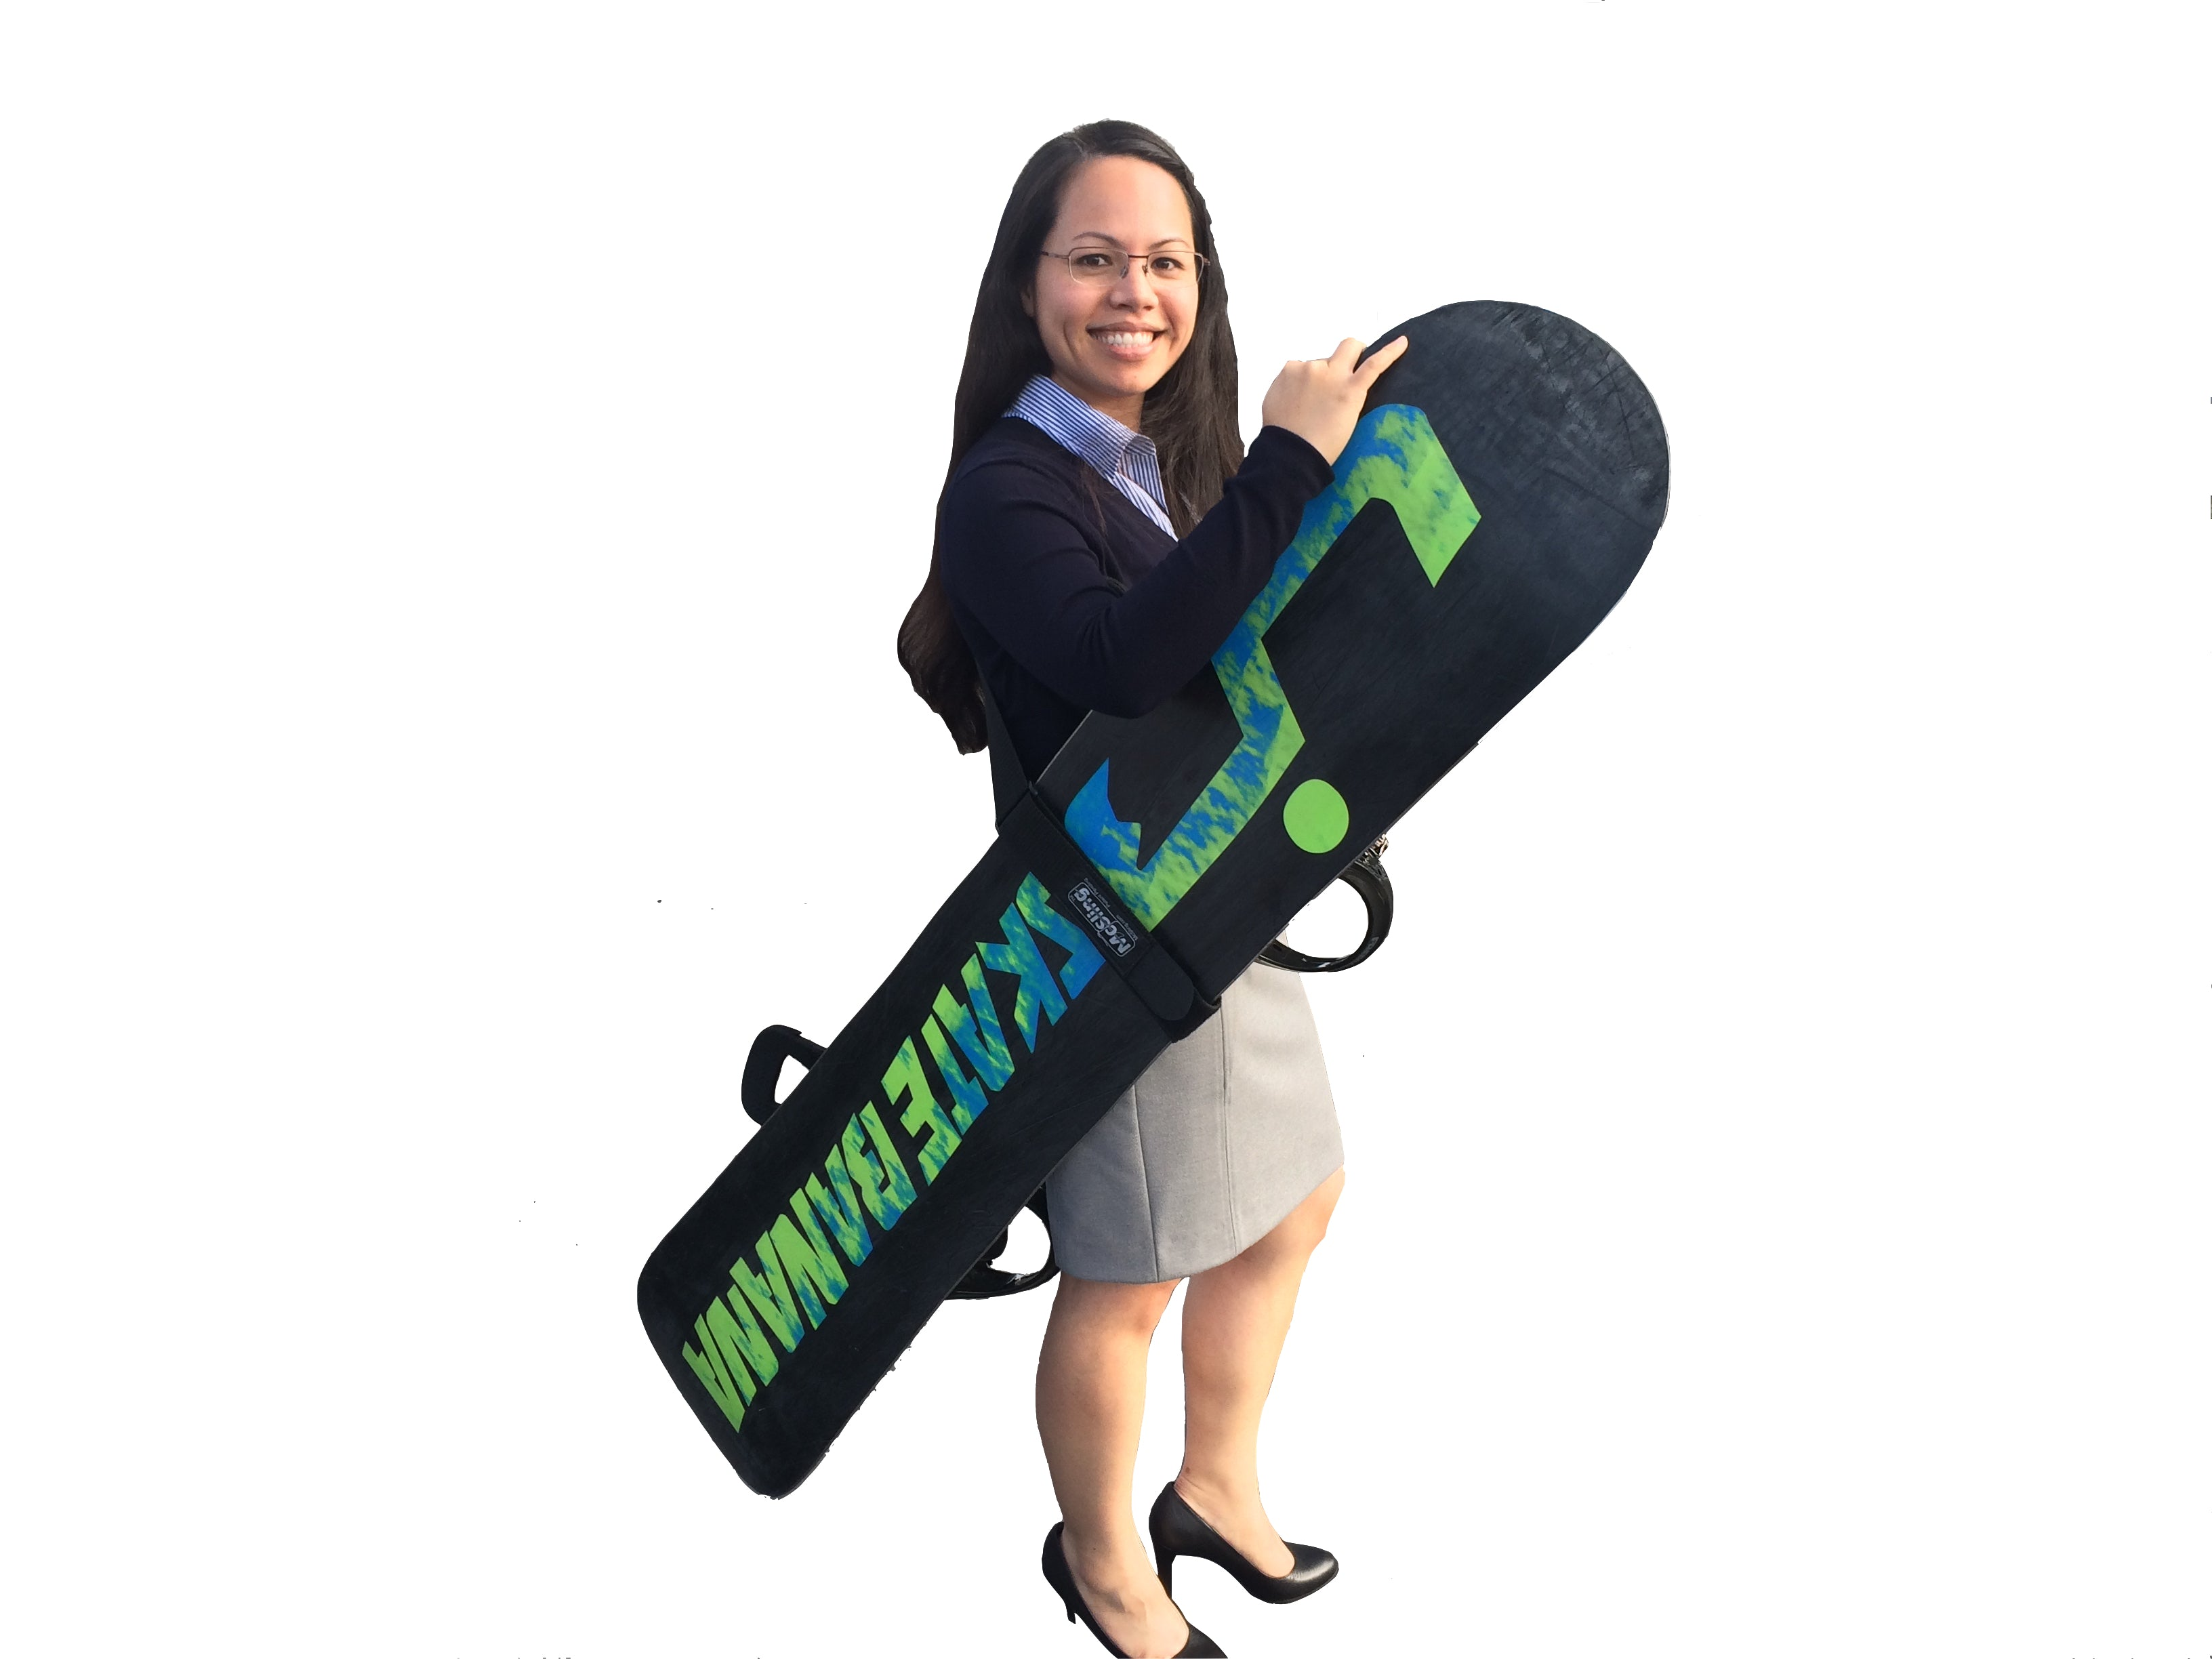 McSling4Snow is a black color snowboard carry strap, by wrapping around the center of the board and carrying on ones shoulder